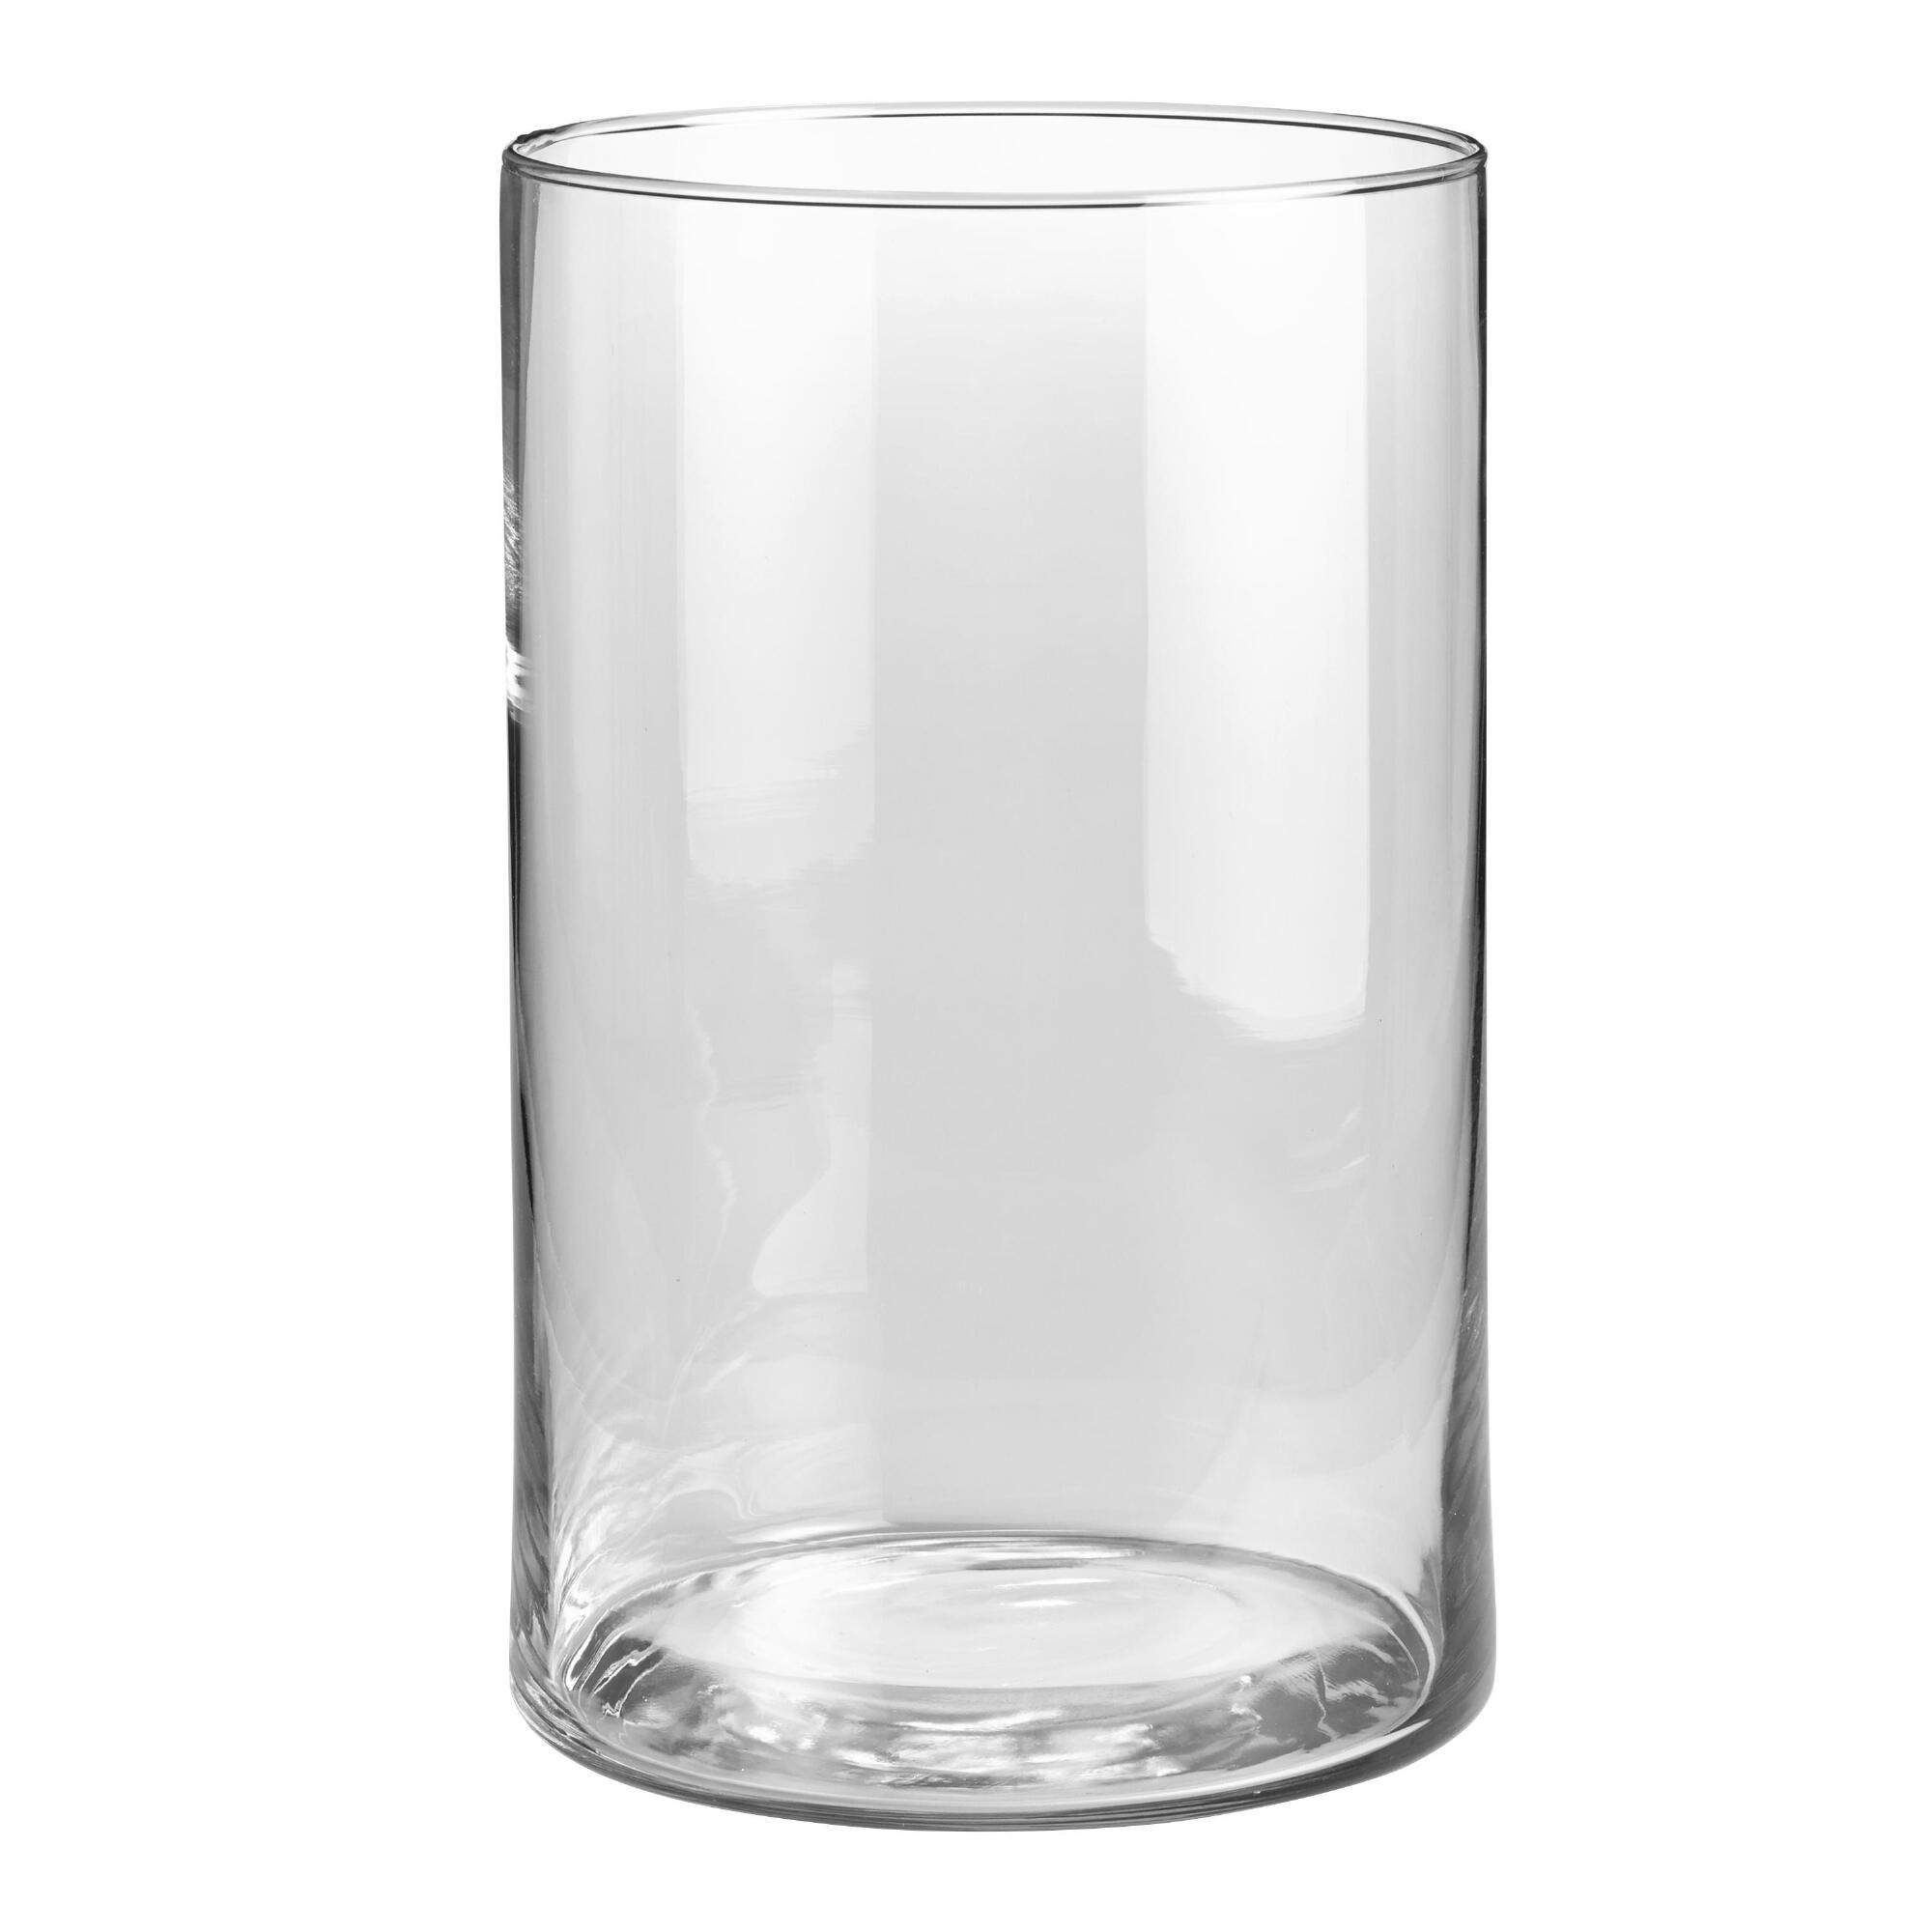 CASAMOTION Vase s Hand Blown Art Glass Vase, Centerpiece Vase s for Table, Clear, set of 3 Product - BalsaCircle Clear 6 pcs 20